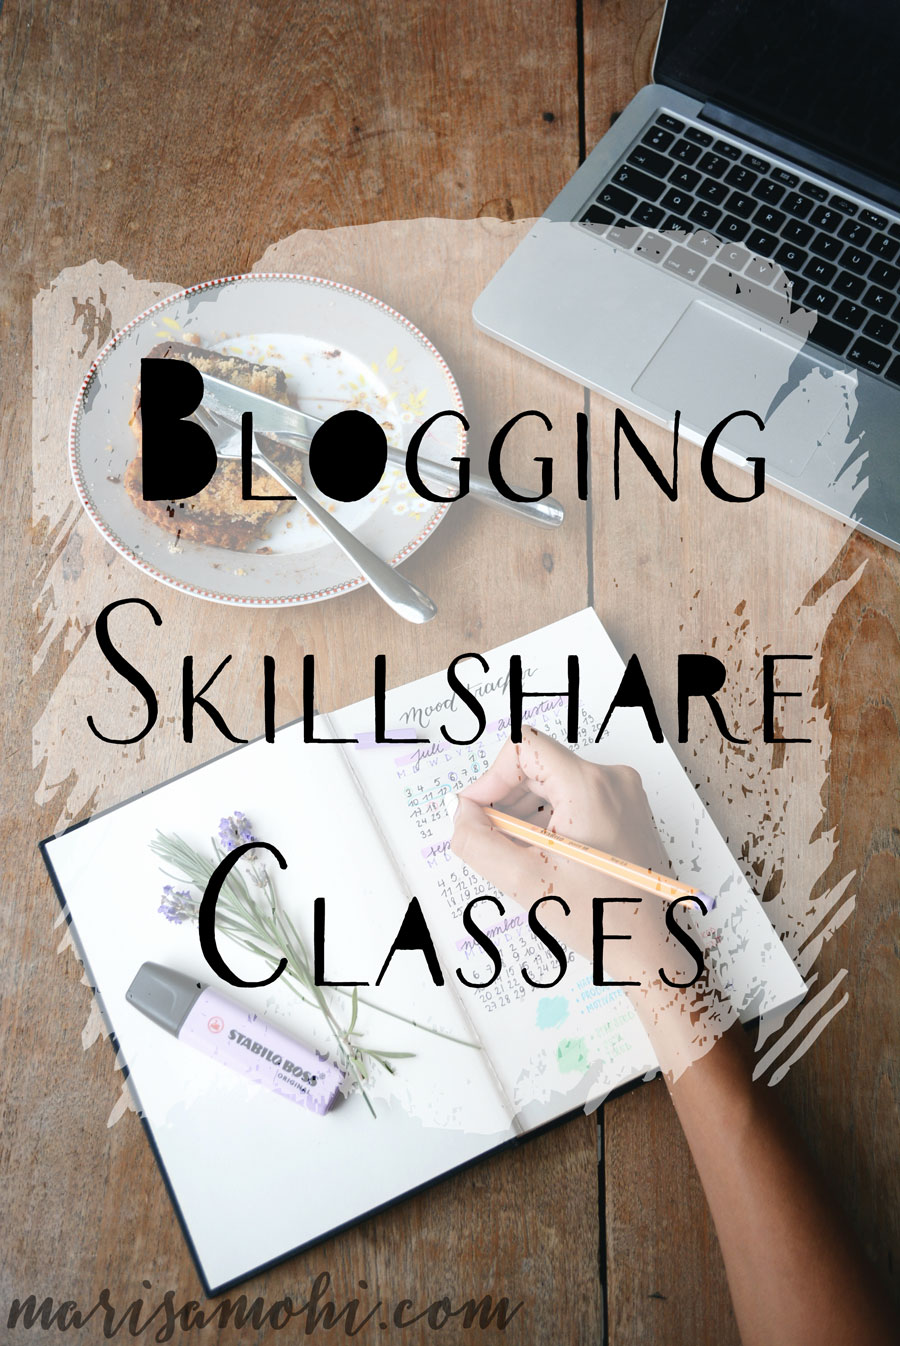 Blogging Skillshare Classes